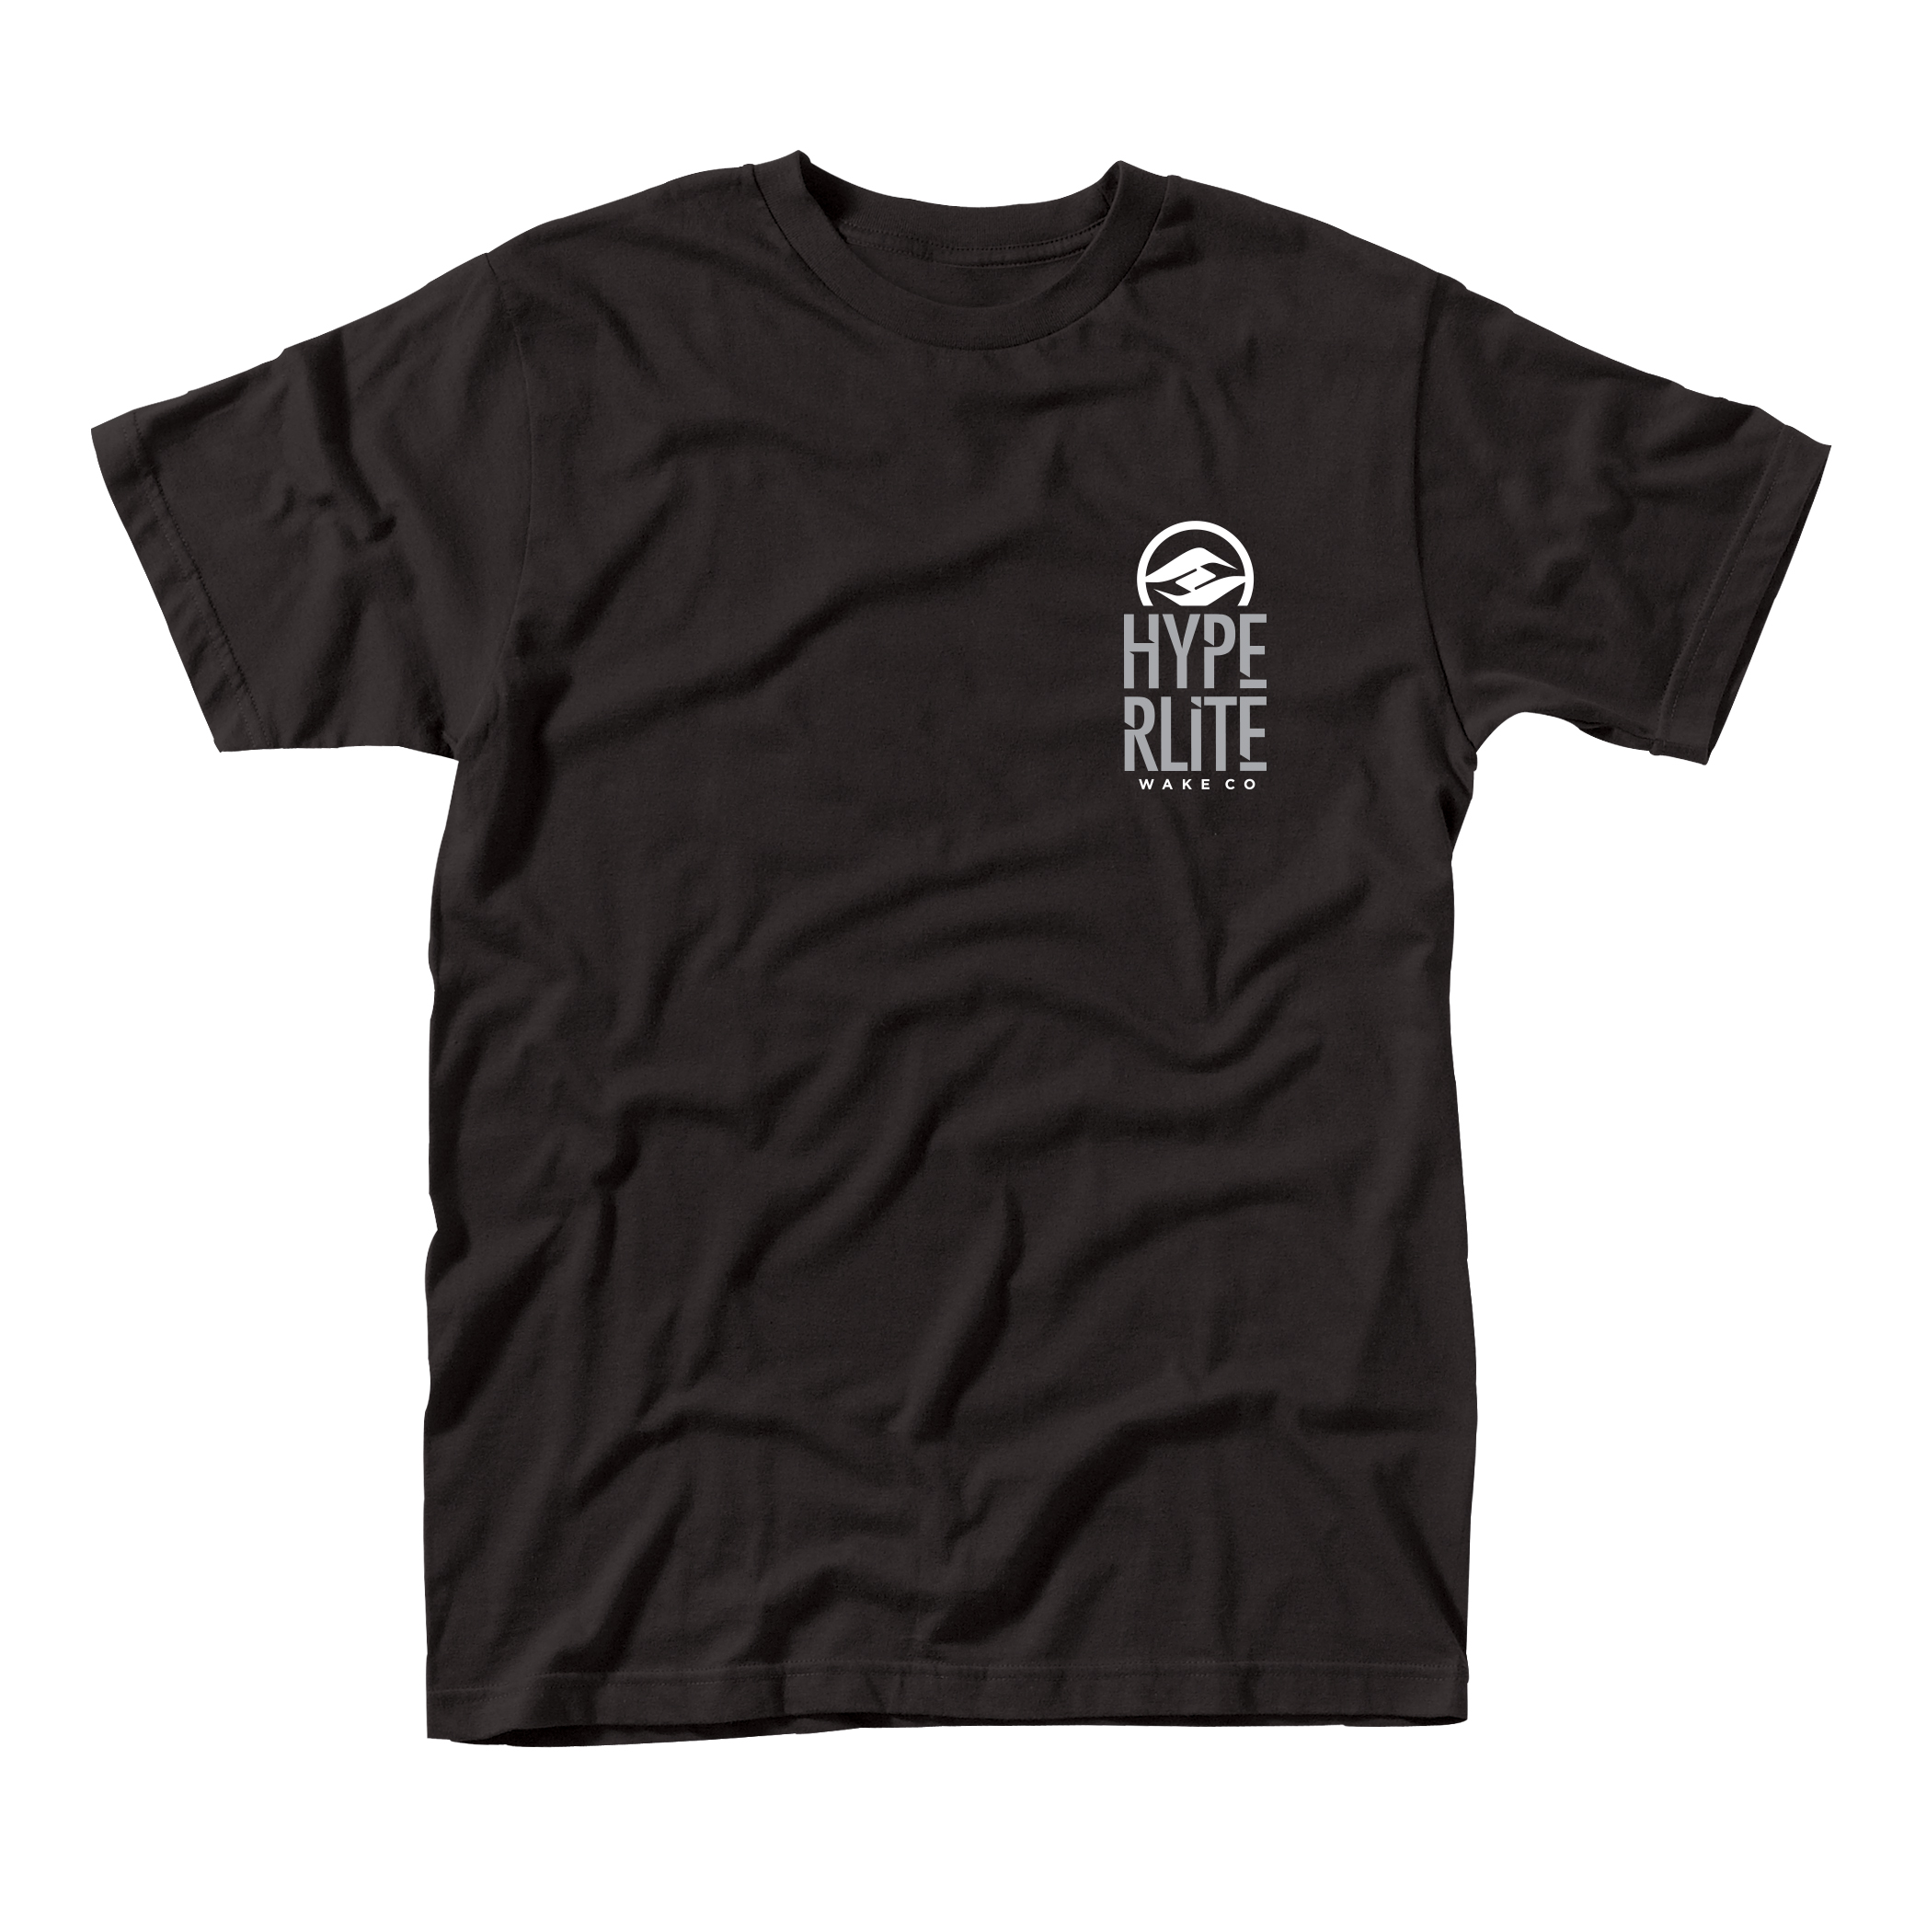 INTERCOM TEE HYPERLITE 2018